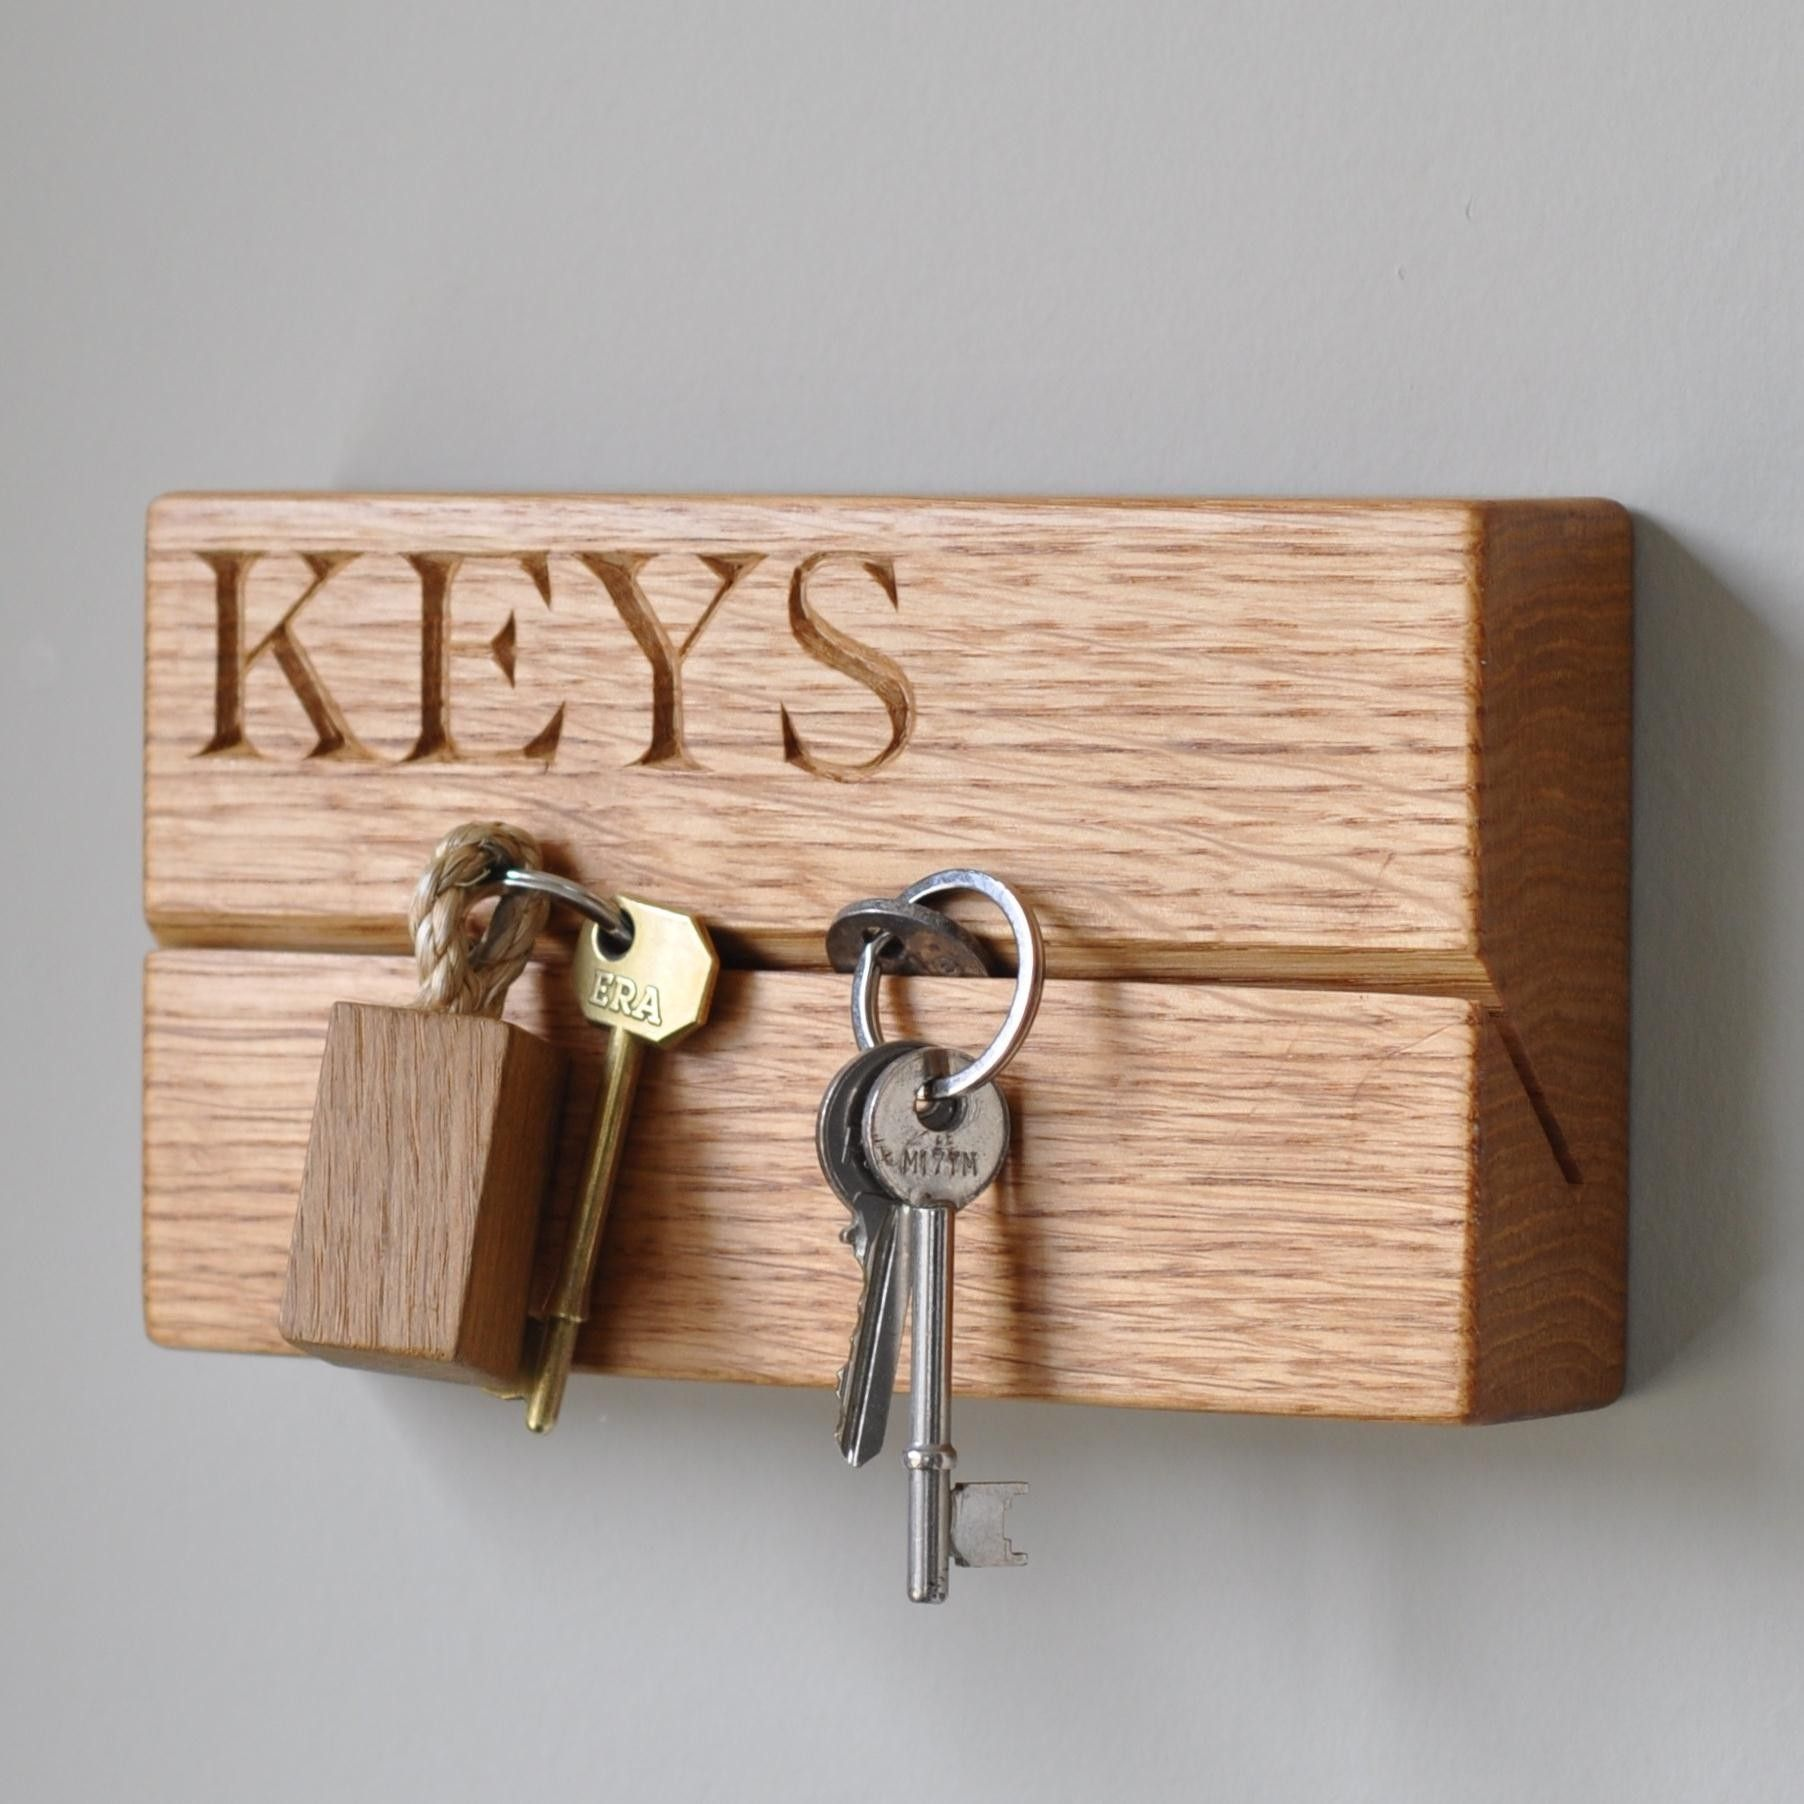 Wooden Key Holder The Handpicked Collection Wooden Key Holder Key Holder Diy Key Holder